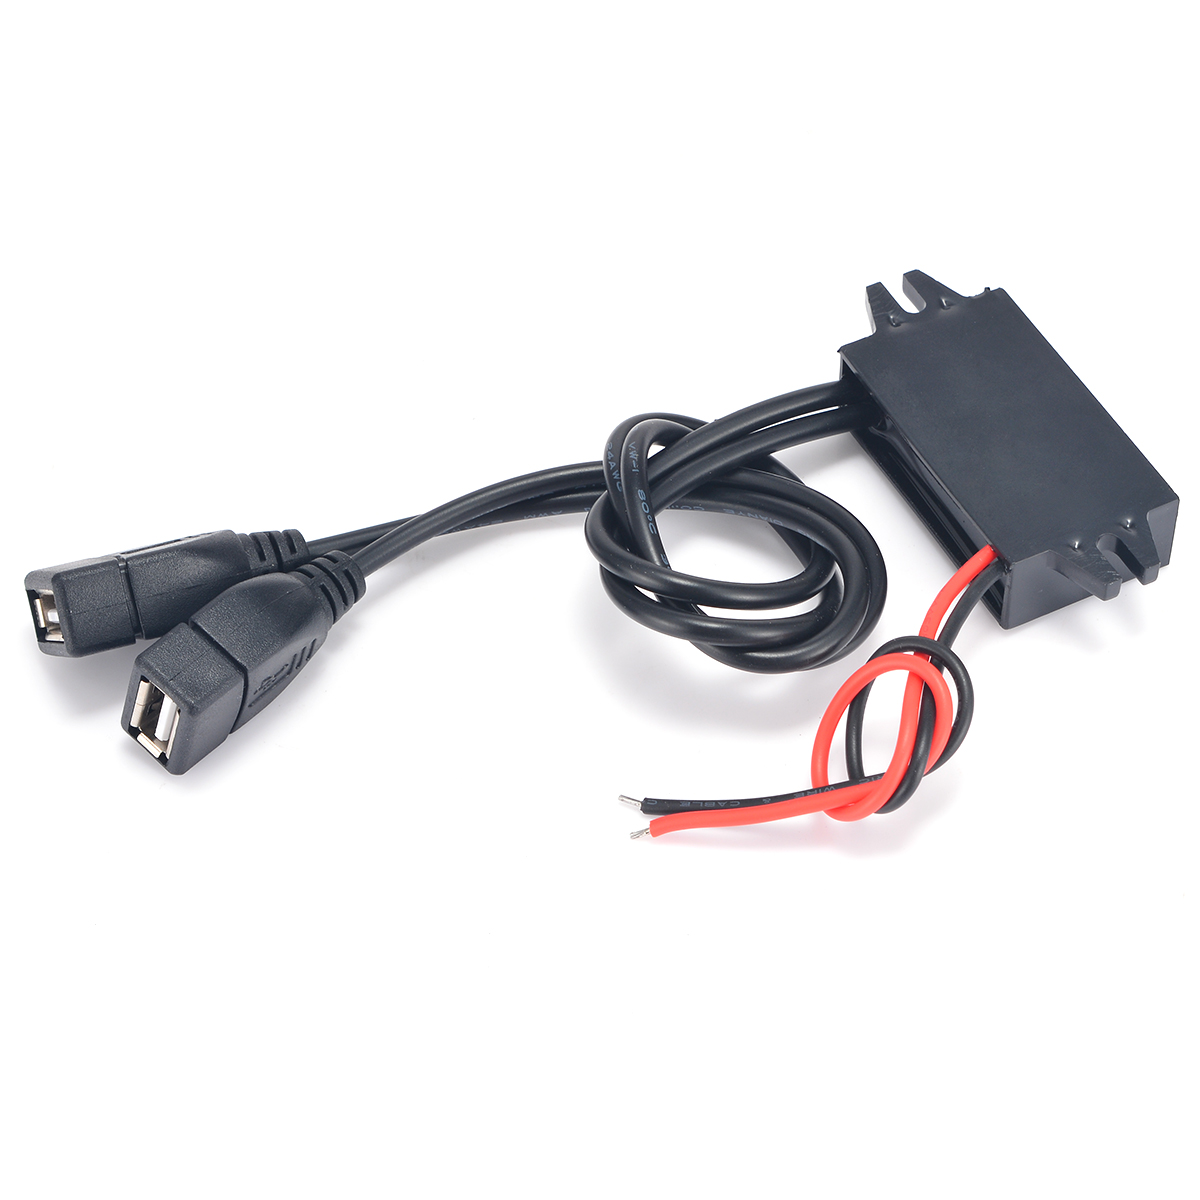 Electrical 12V To 5V Car Dual USB Power Converter Module Cable Adapter Connector Car Motor 3A Charger